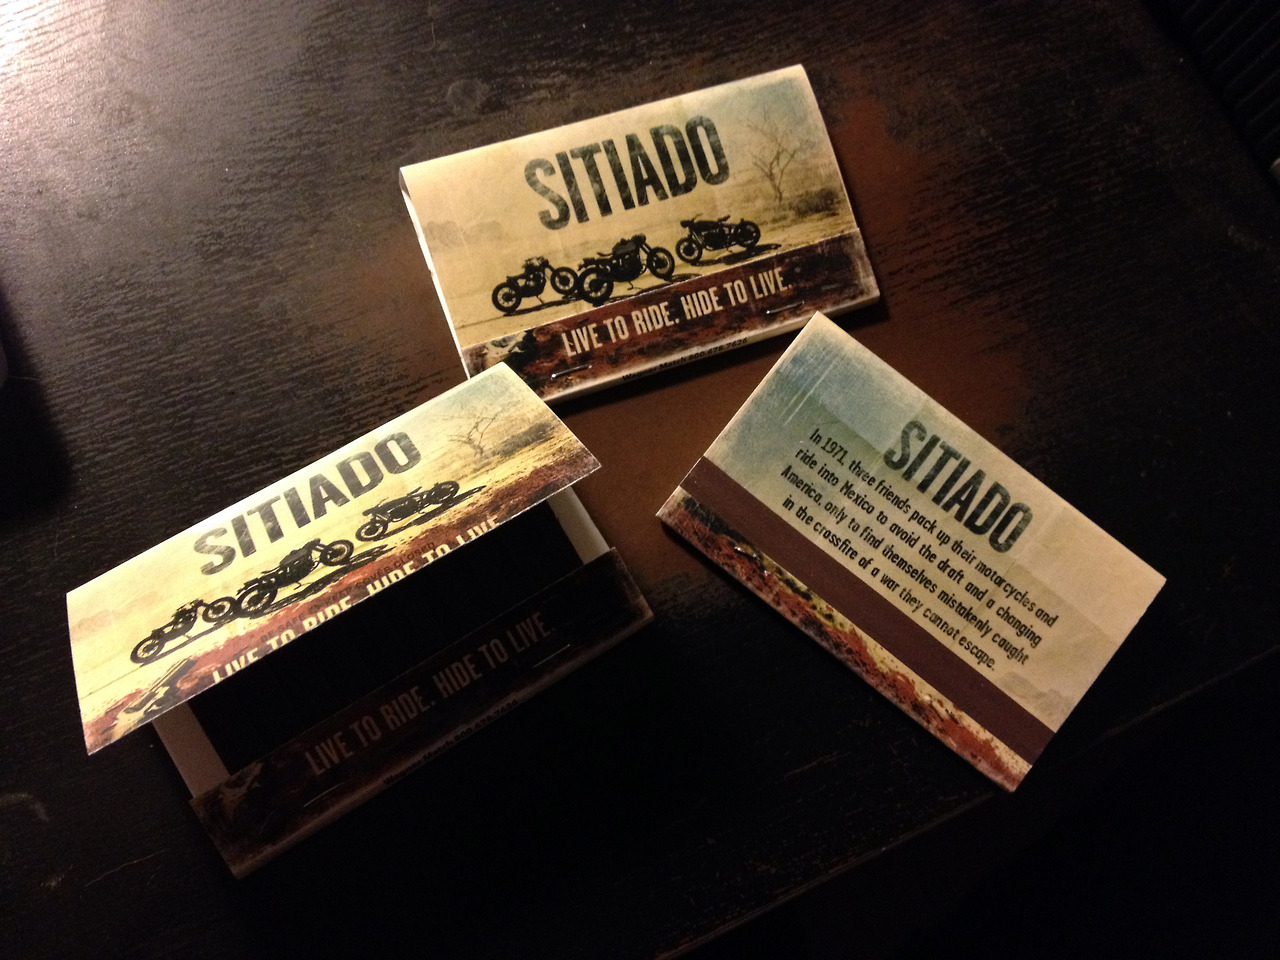 Check out the new matchbook/business cards for my new movie that are starting to pop up in bars all over Los Angeles! www.sitiadomovie.com